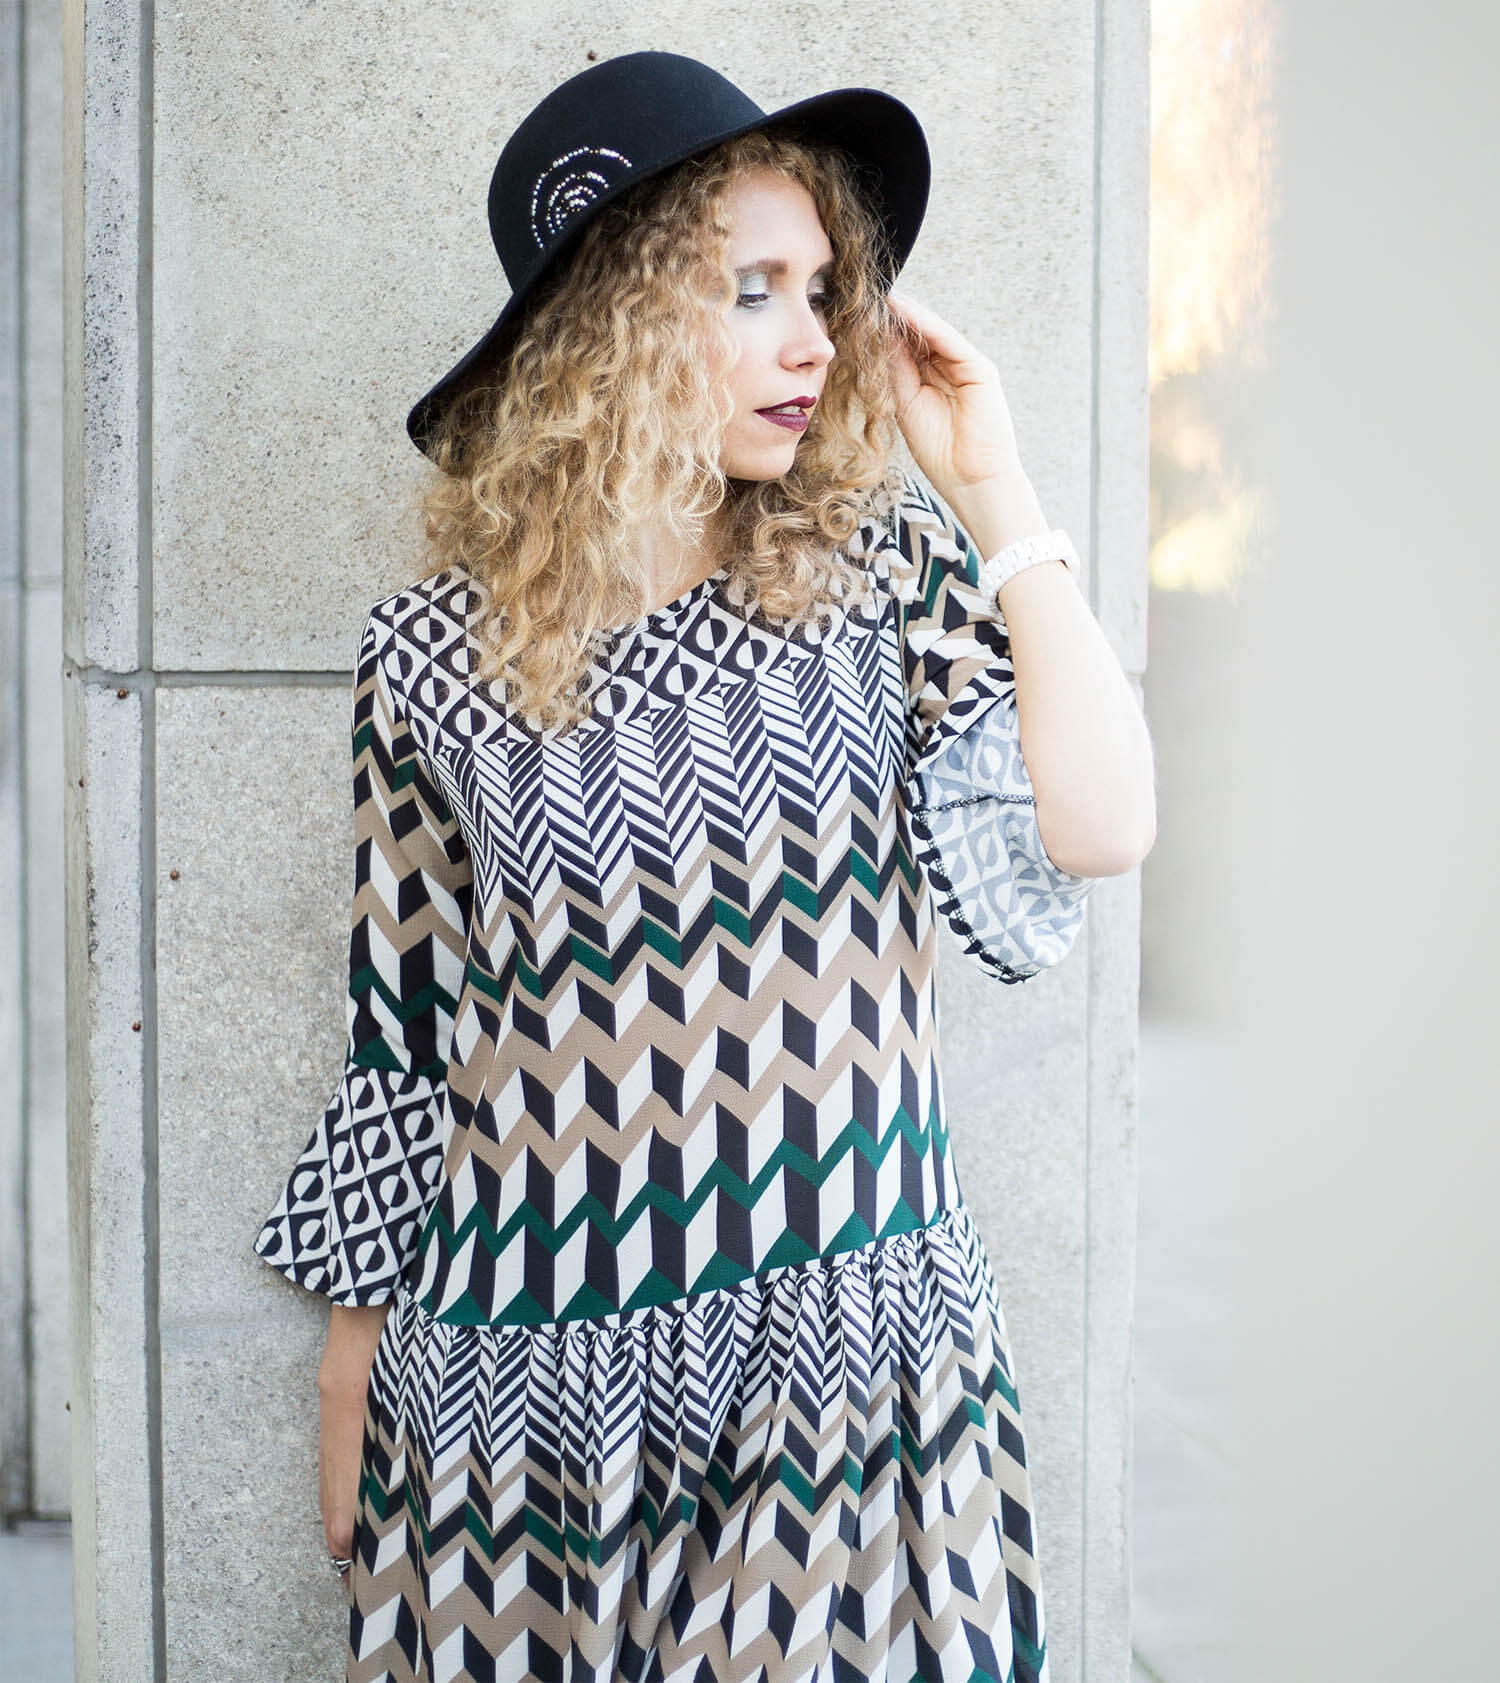 Outfit: Seventies Dress and Floppy Hat